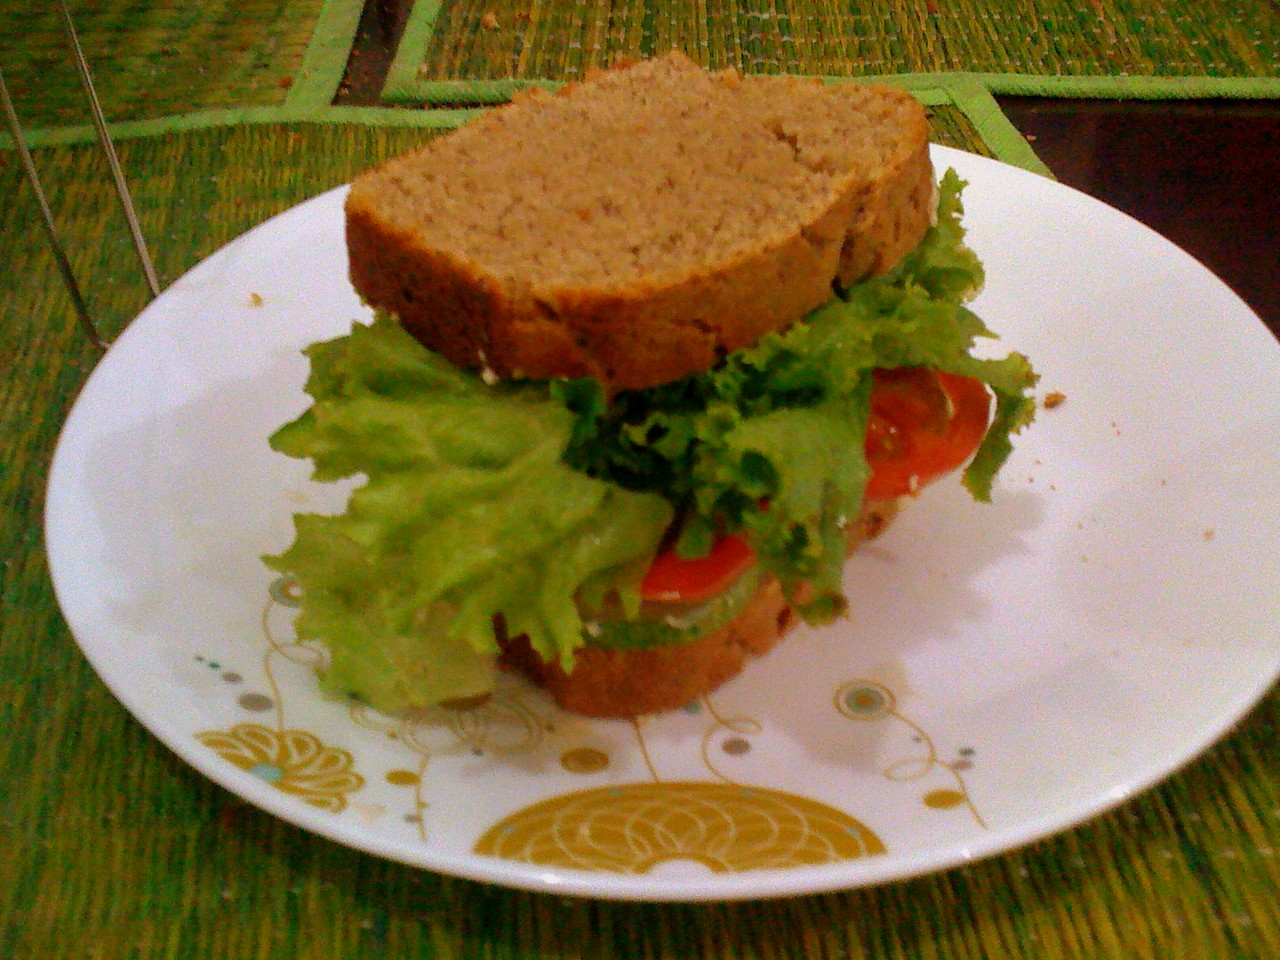 Lettuce tomatoes and cucumber in a sandwich, with above whole wheat bread.